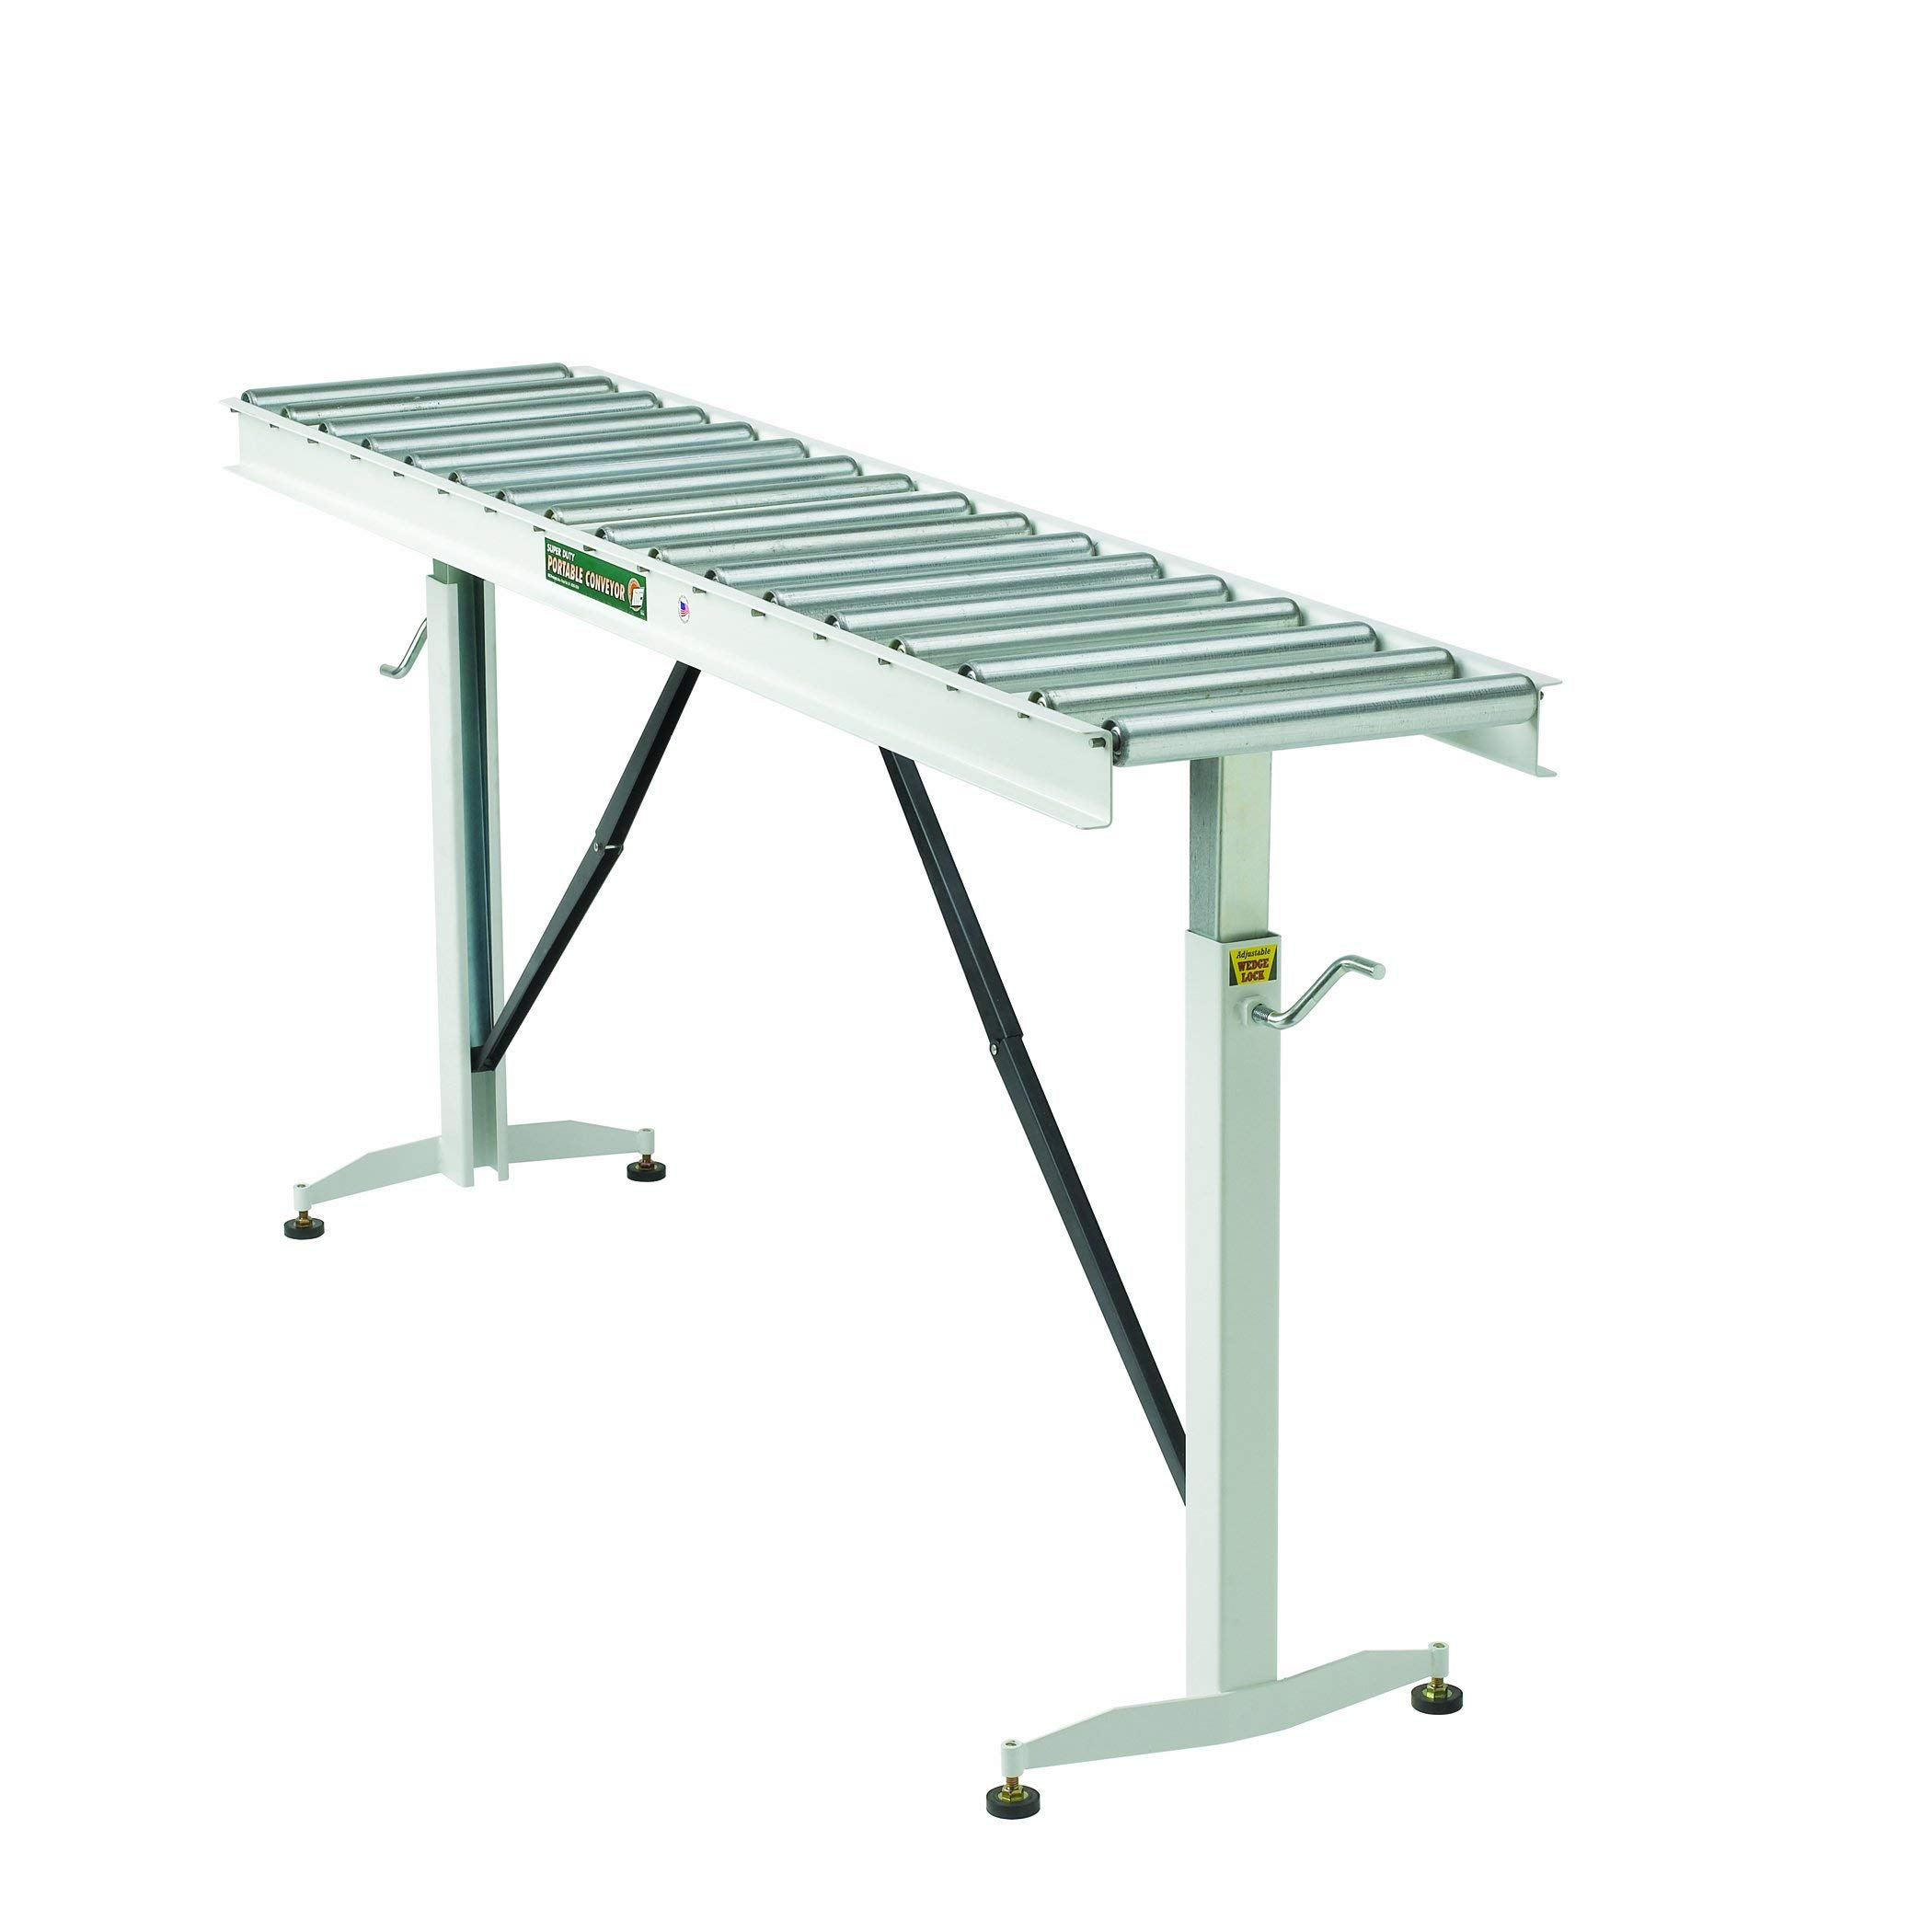 HTC HRT-70 Adjustable Folding Roller Conveyor Table 66-Inch length by 15-Inch wide 17-Ball Bearing Rollers (Renewed)